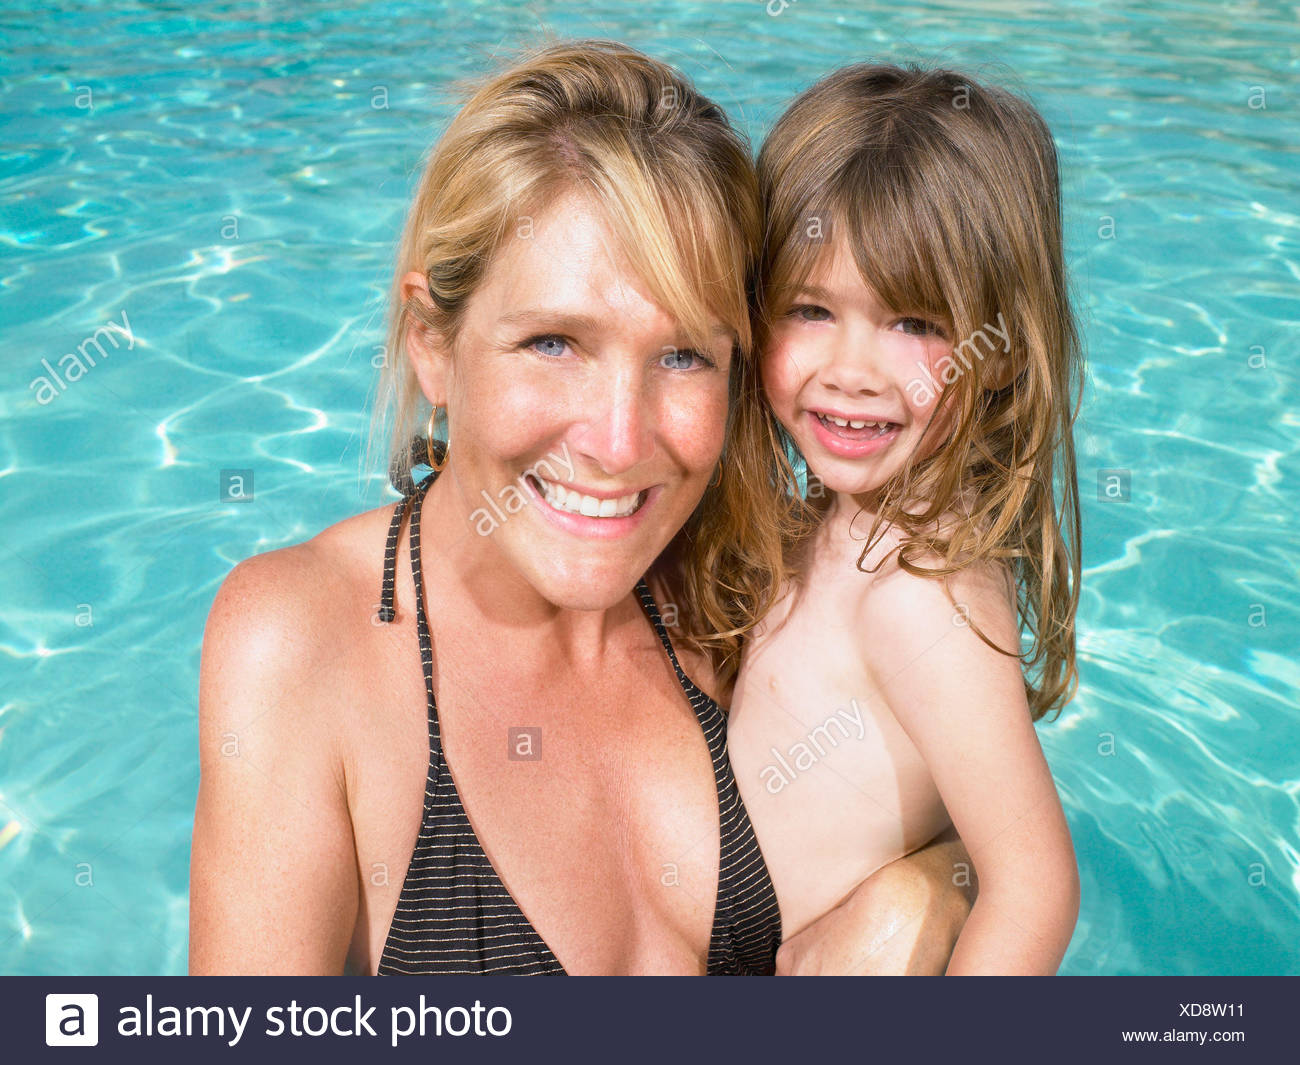 Mother and daughter in pool. - Stock Image